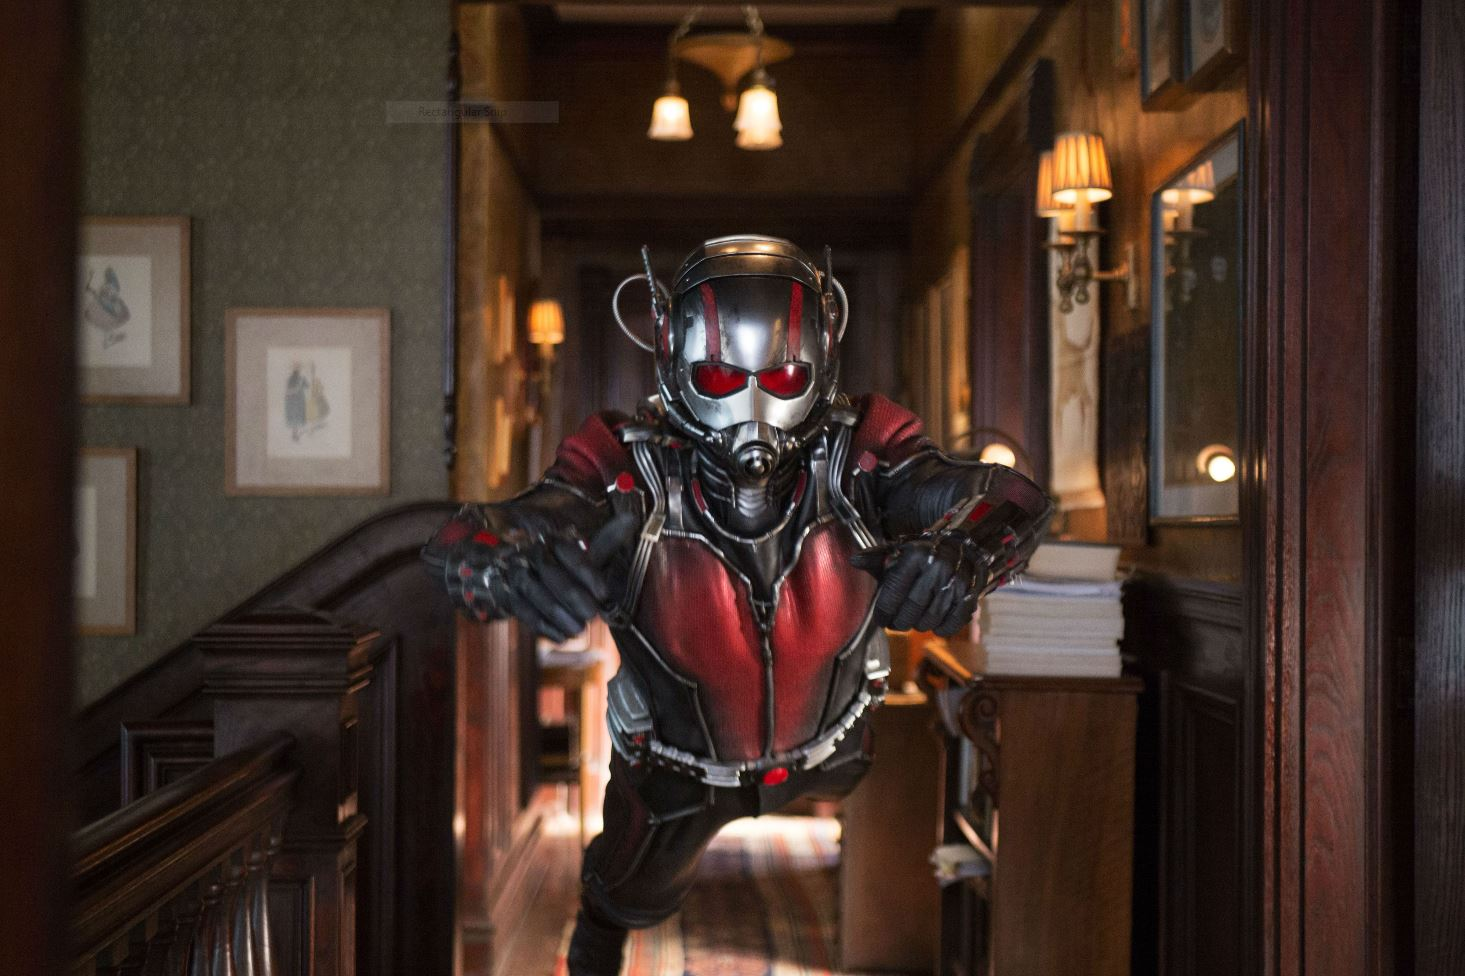 Paul Rudd as Ant-Man. Ant-Man Review